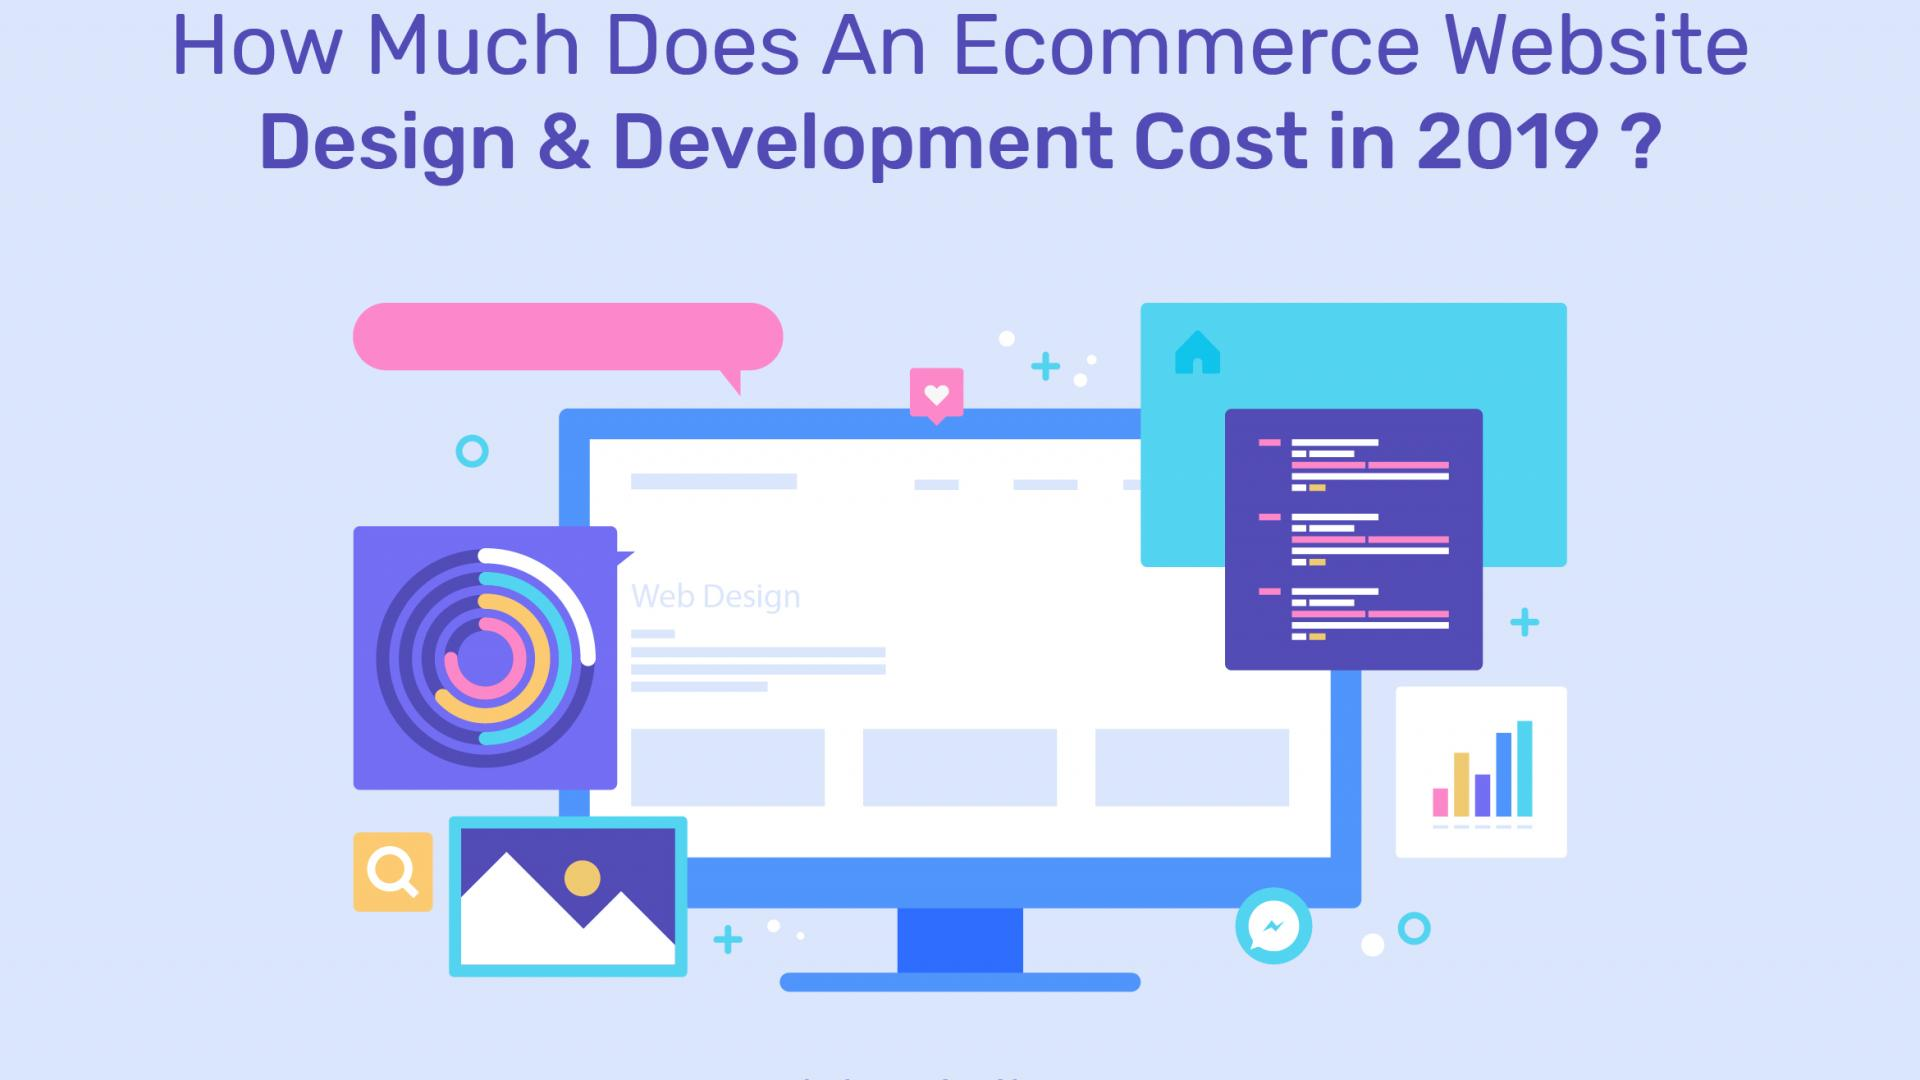 How Much Does An eCommerce Website Design & Development Cost in 2019 ?